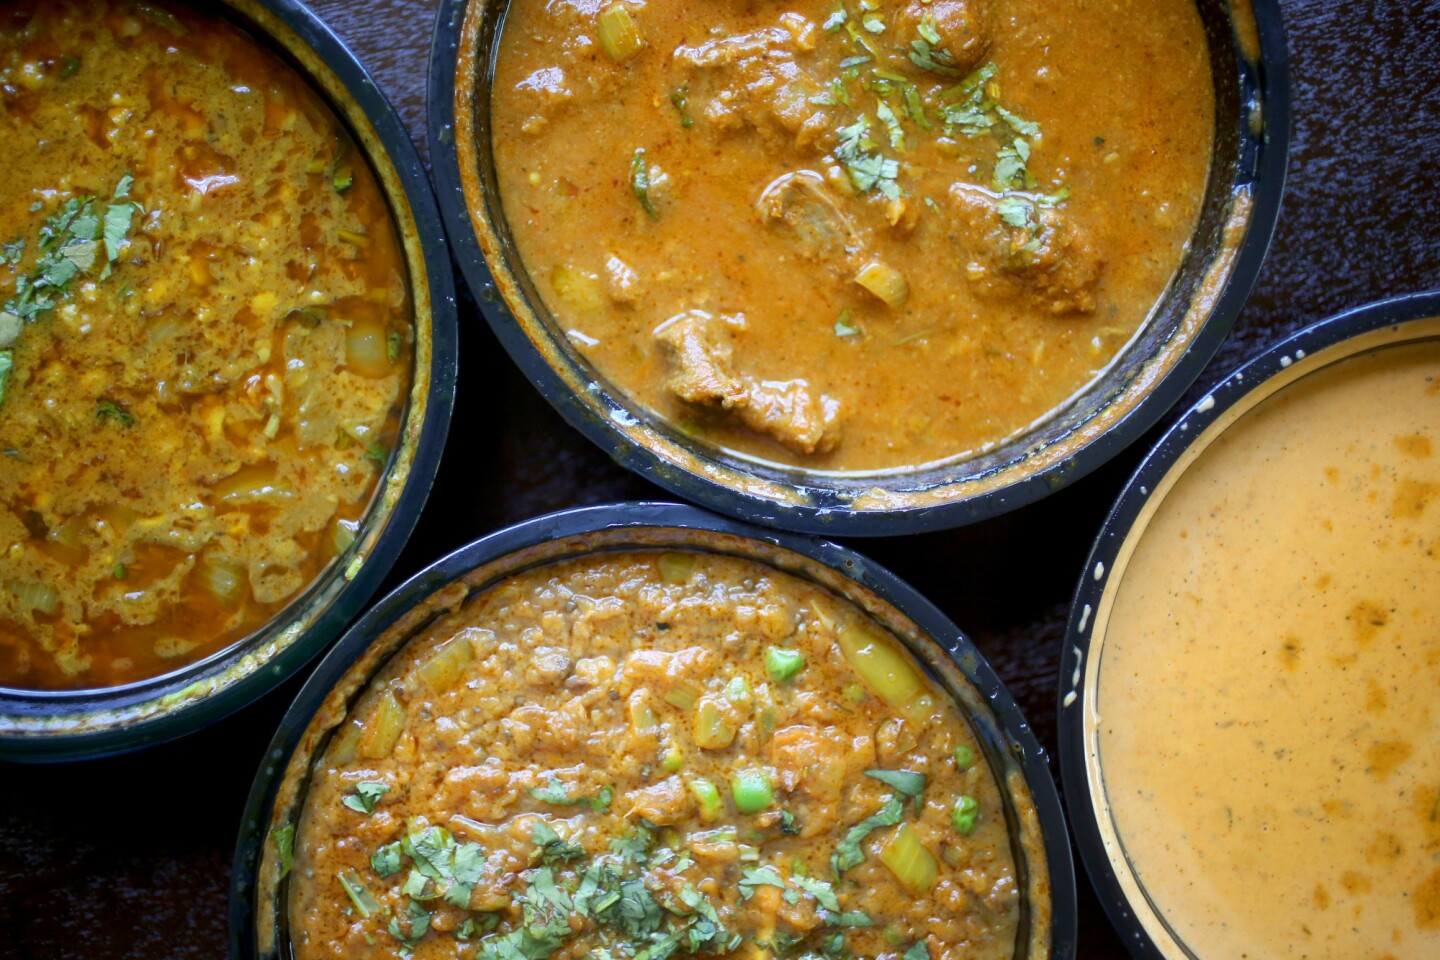 Arun's Indian Kichen, a small Indian restaurant in Coral Springs that dishes out big flavors mostly for takeout from a bustling kitchen. It isn't fancy, but the food is freshly prepared from co-owners Arun Sareen and Ann Sareen is refined. Mike Stocker, South Florida Sun-Sentinel